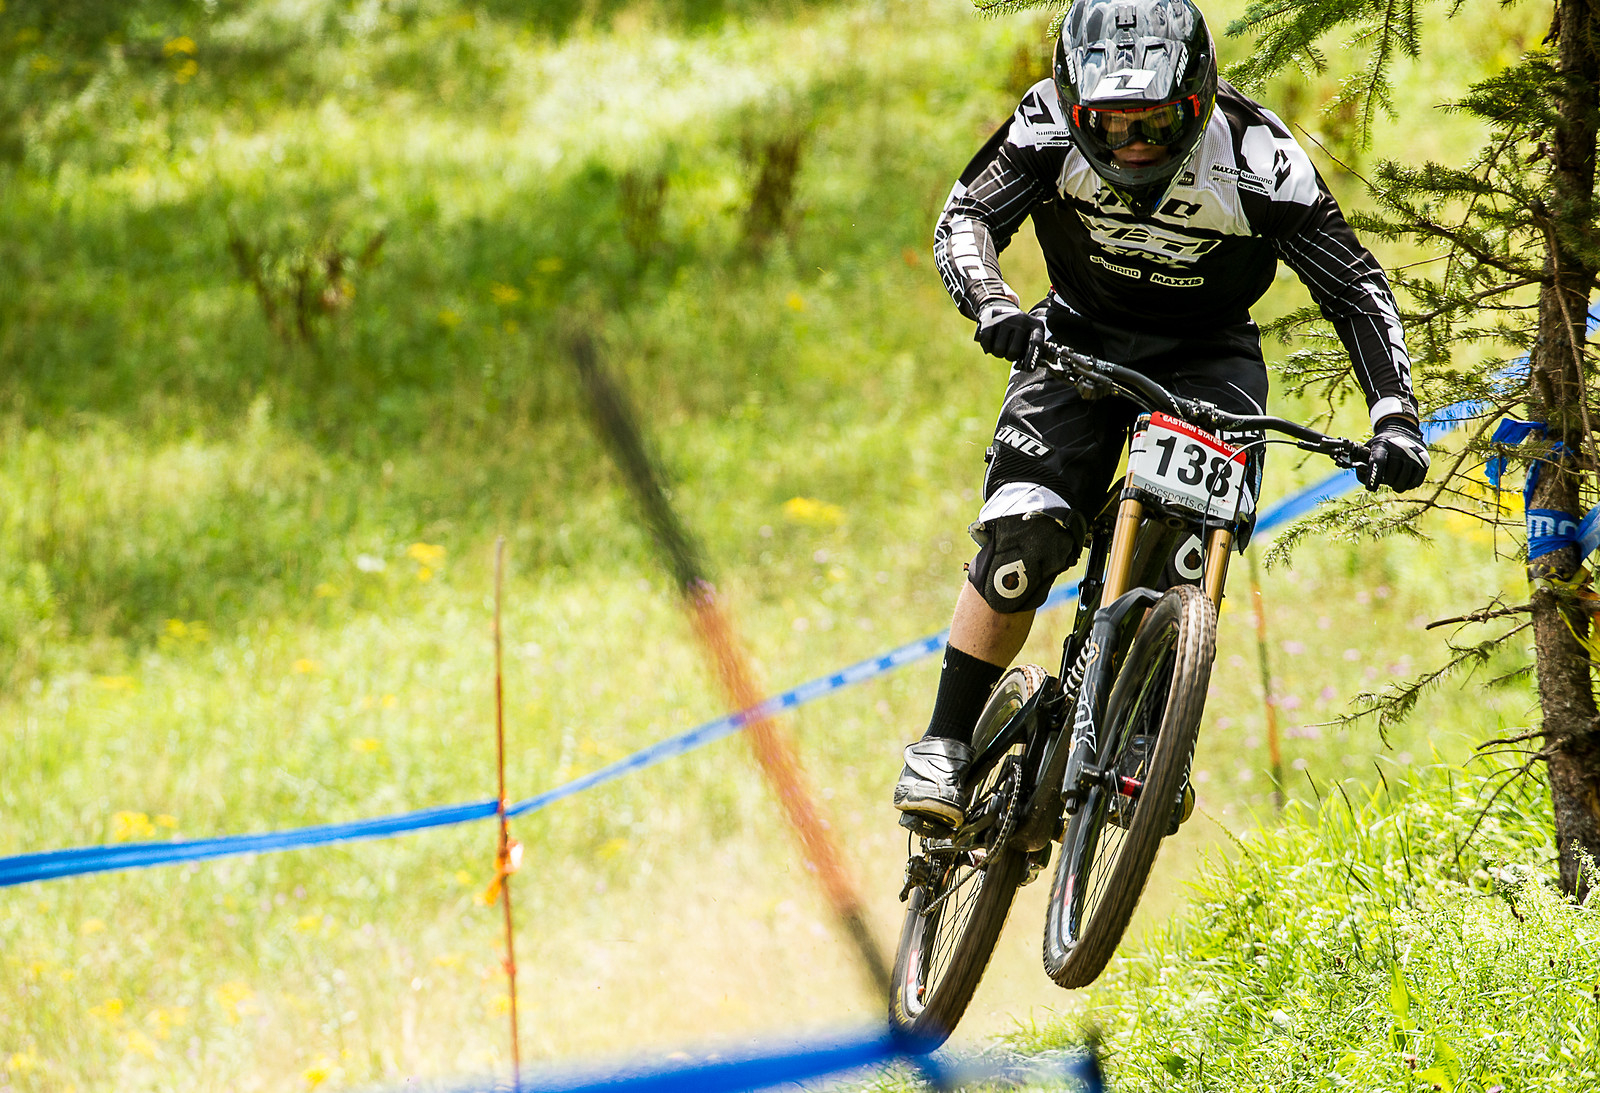 Richie Rude at the Plattekill ESC  - mdelorme - Mountain Biking Pictures - Vital MTB